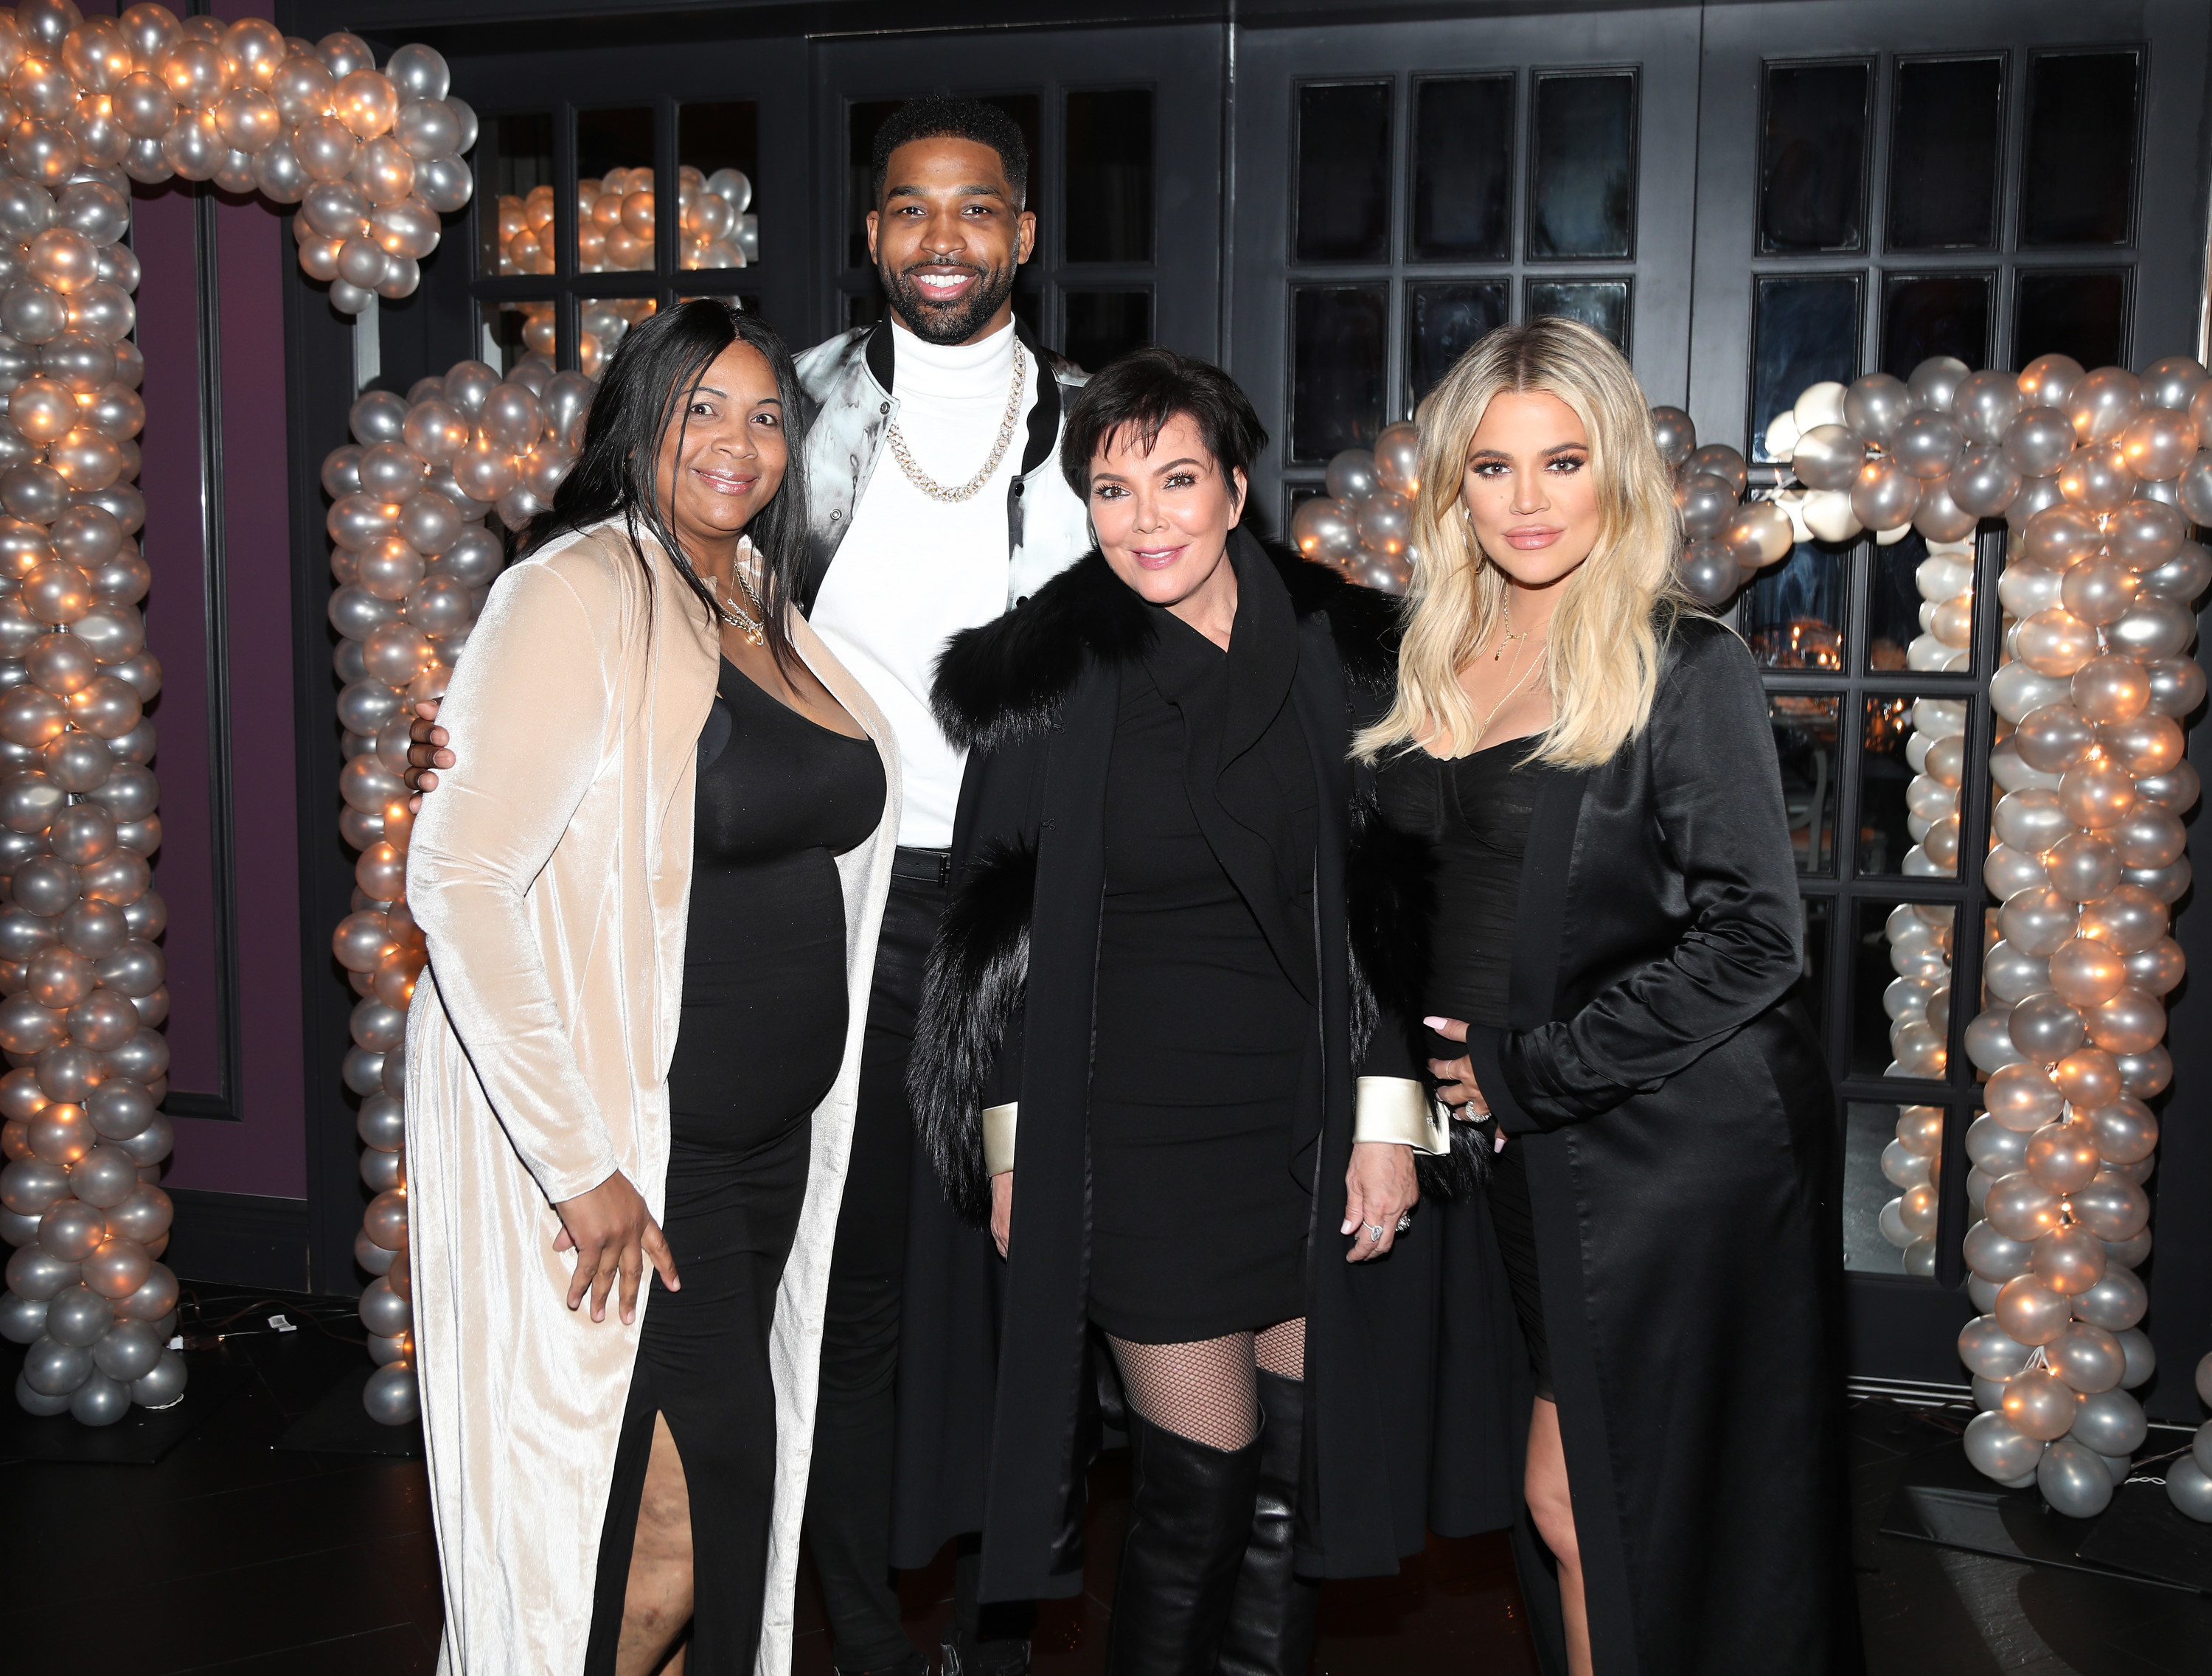 Andrea and Tristan Thompson and Khloe Kardashian and Kris Jenner all pose for a photo together at an event